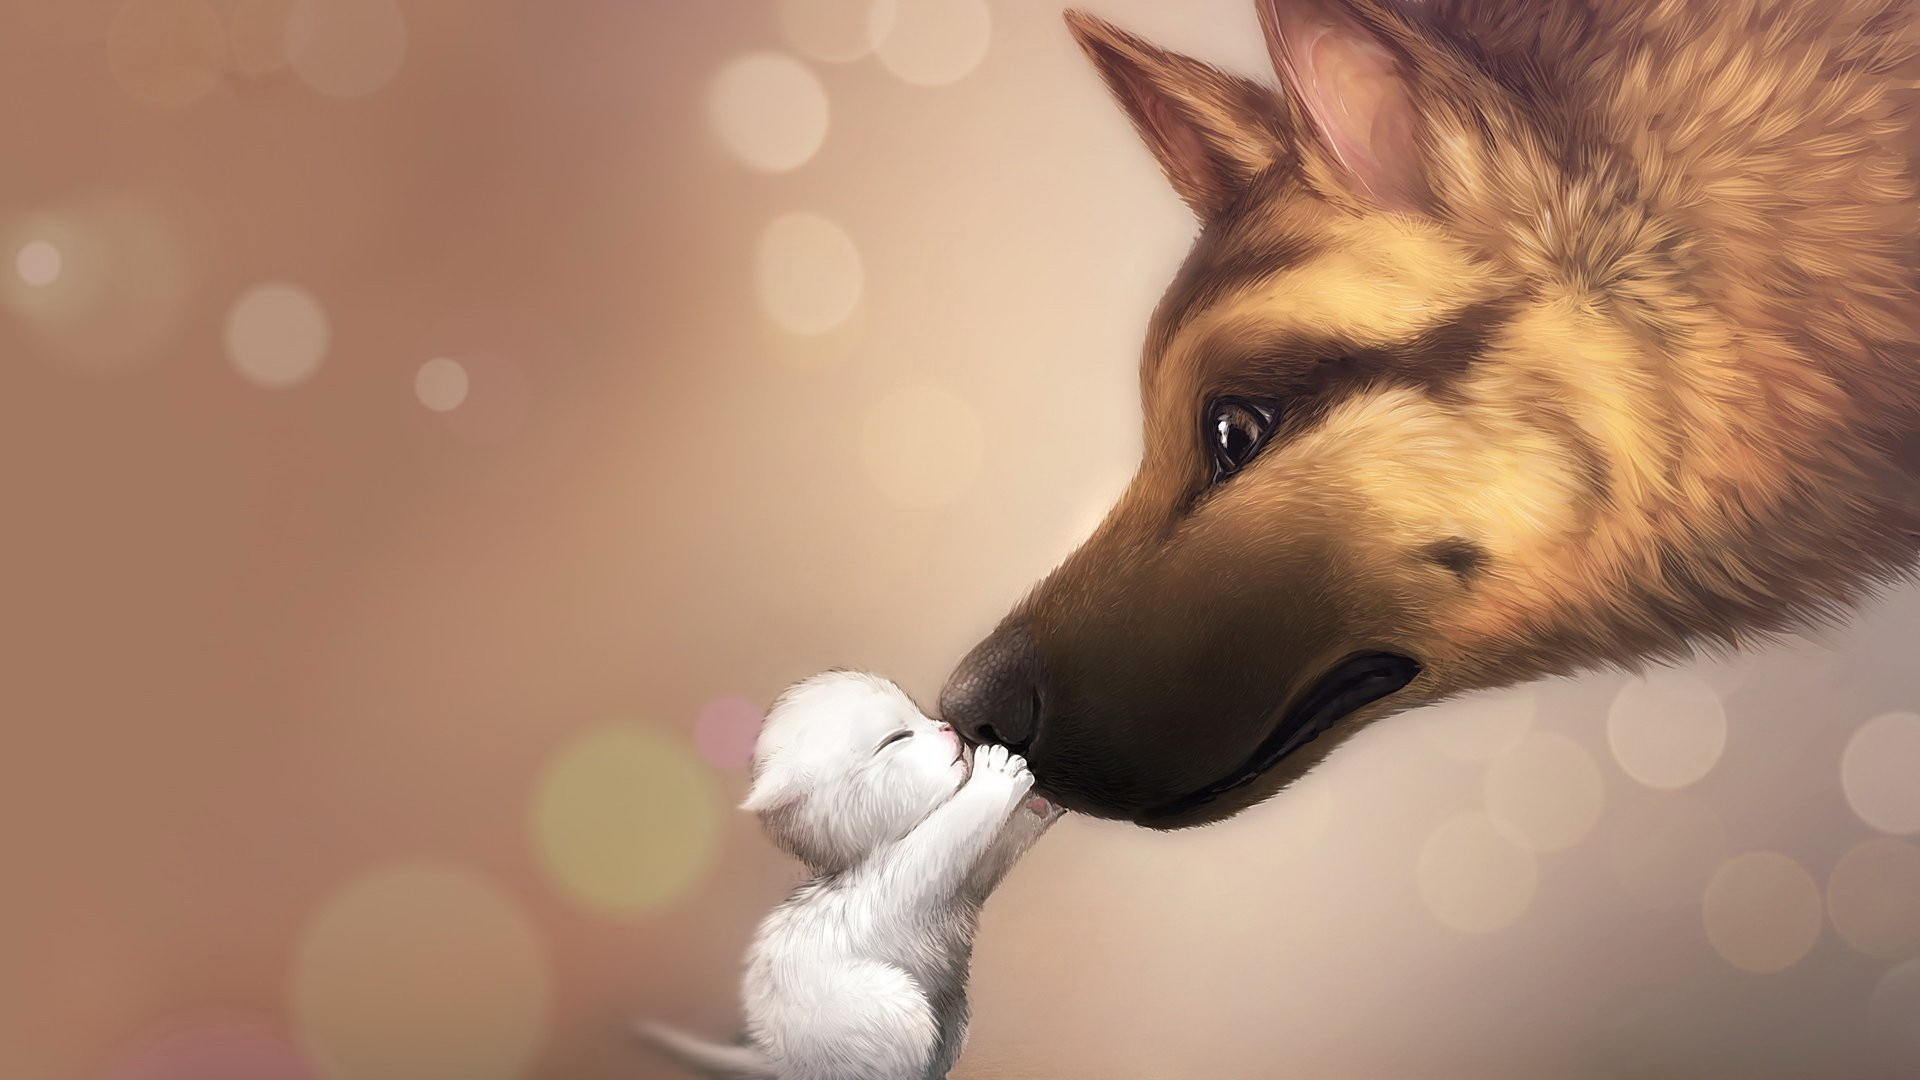 Dog and Little Cat  Full HD Desktop Wallpapers 1080p